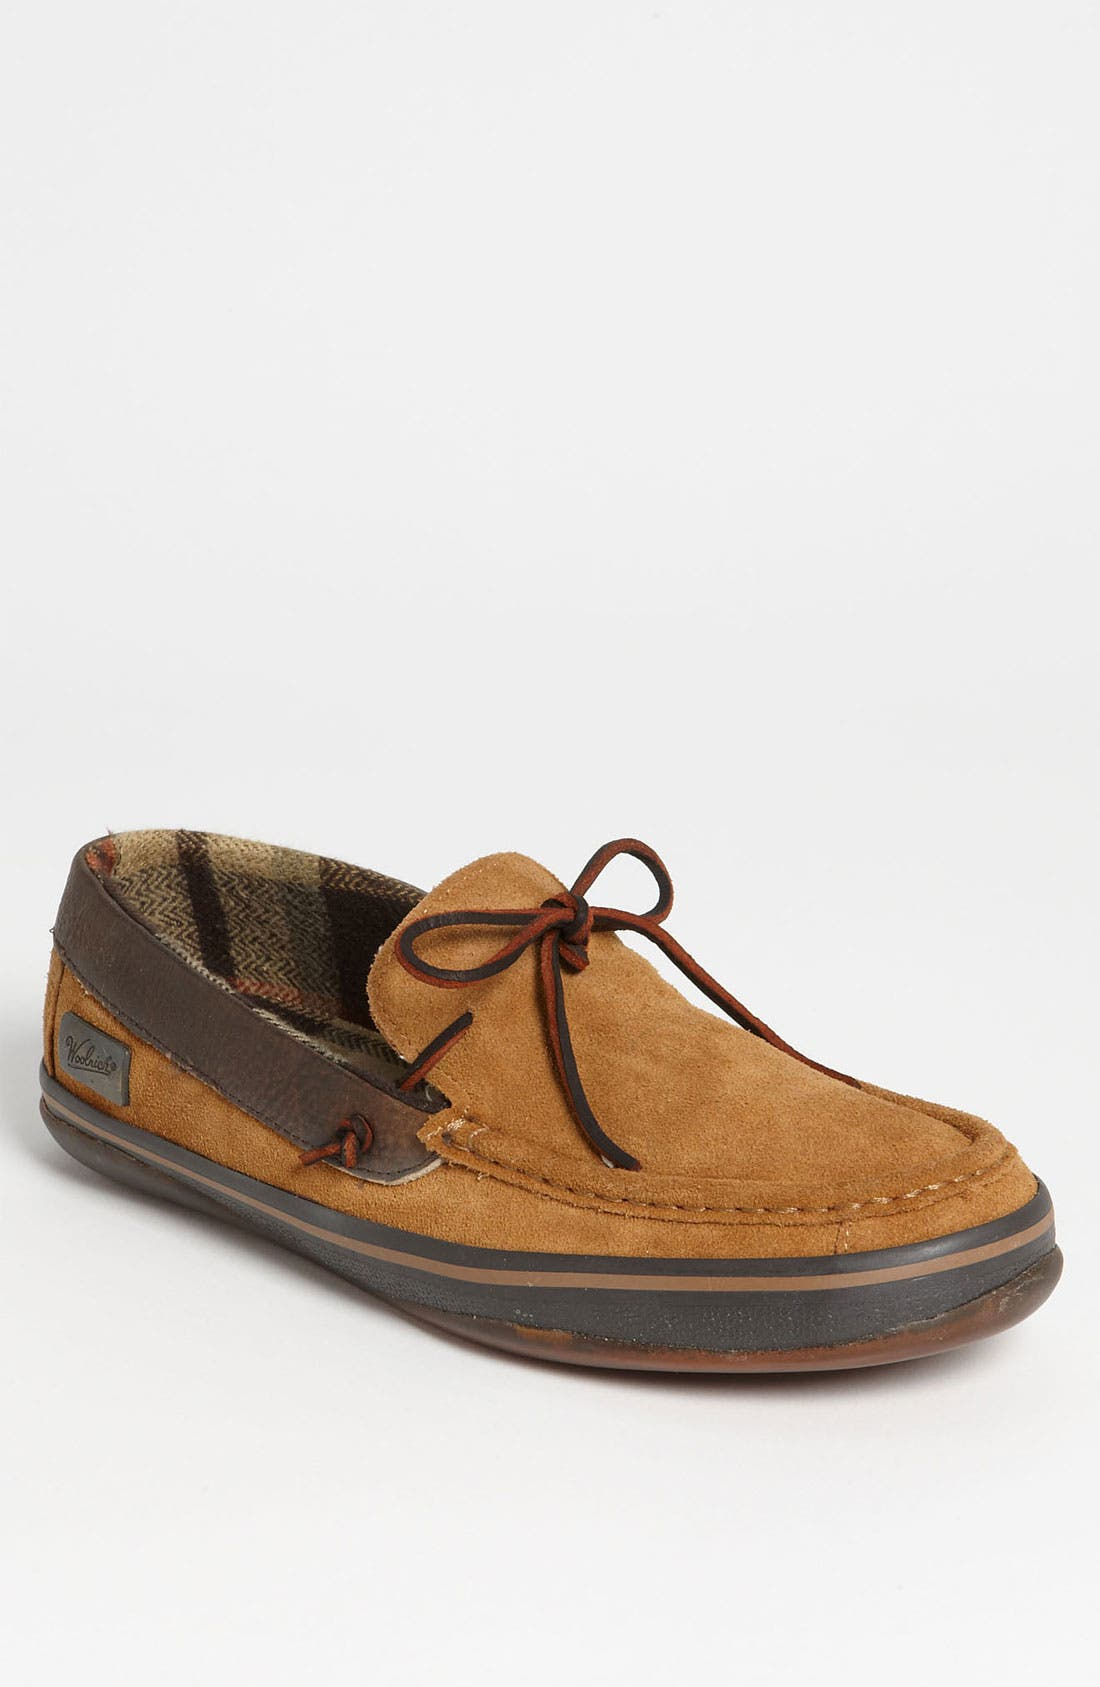 Alternate Image 1 Selected - Woolrich 'Weston' Slipper (Online Only)